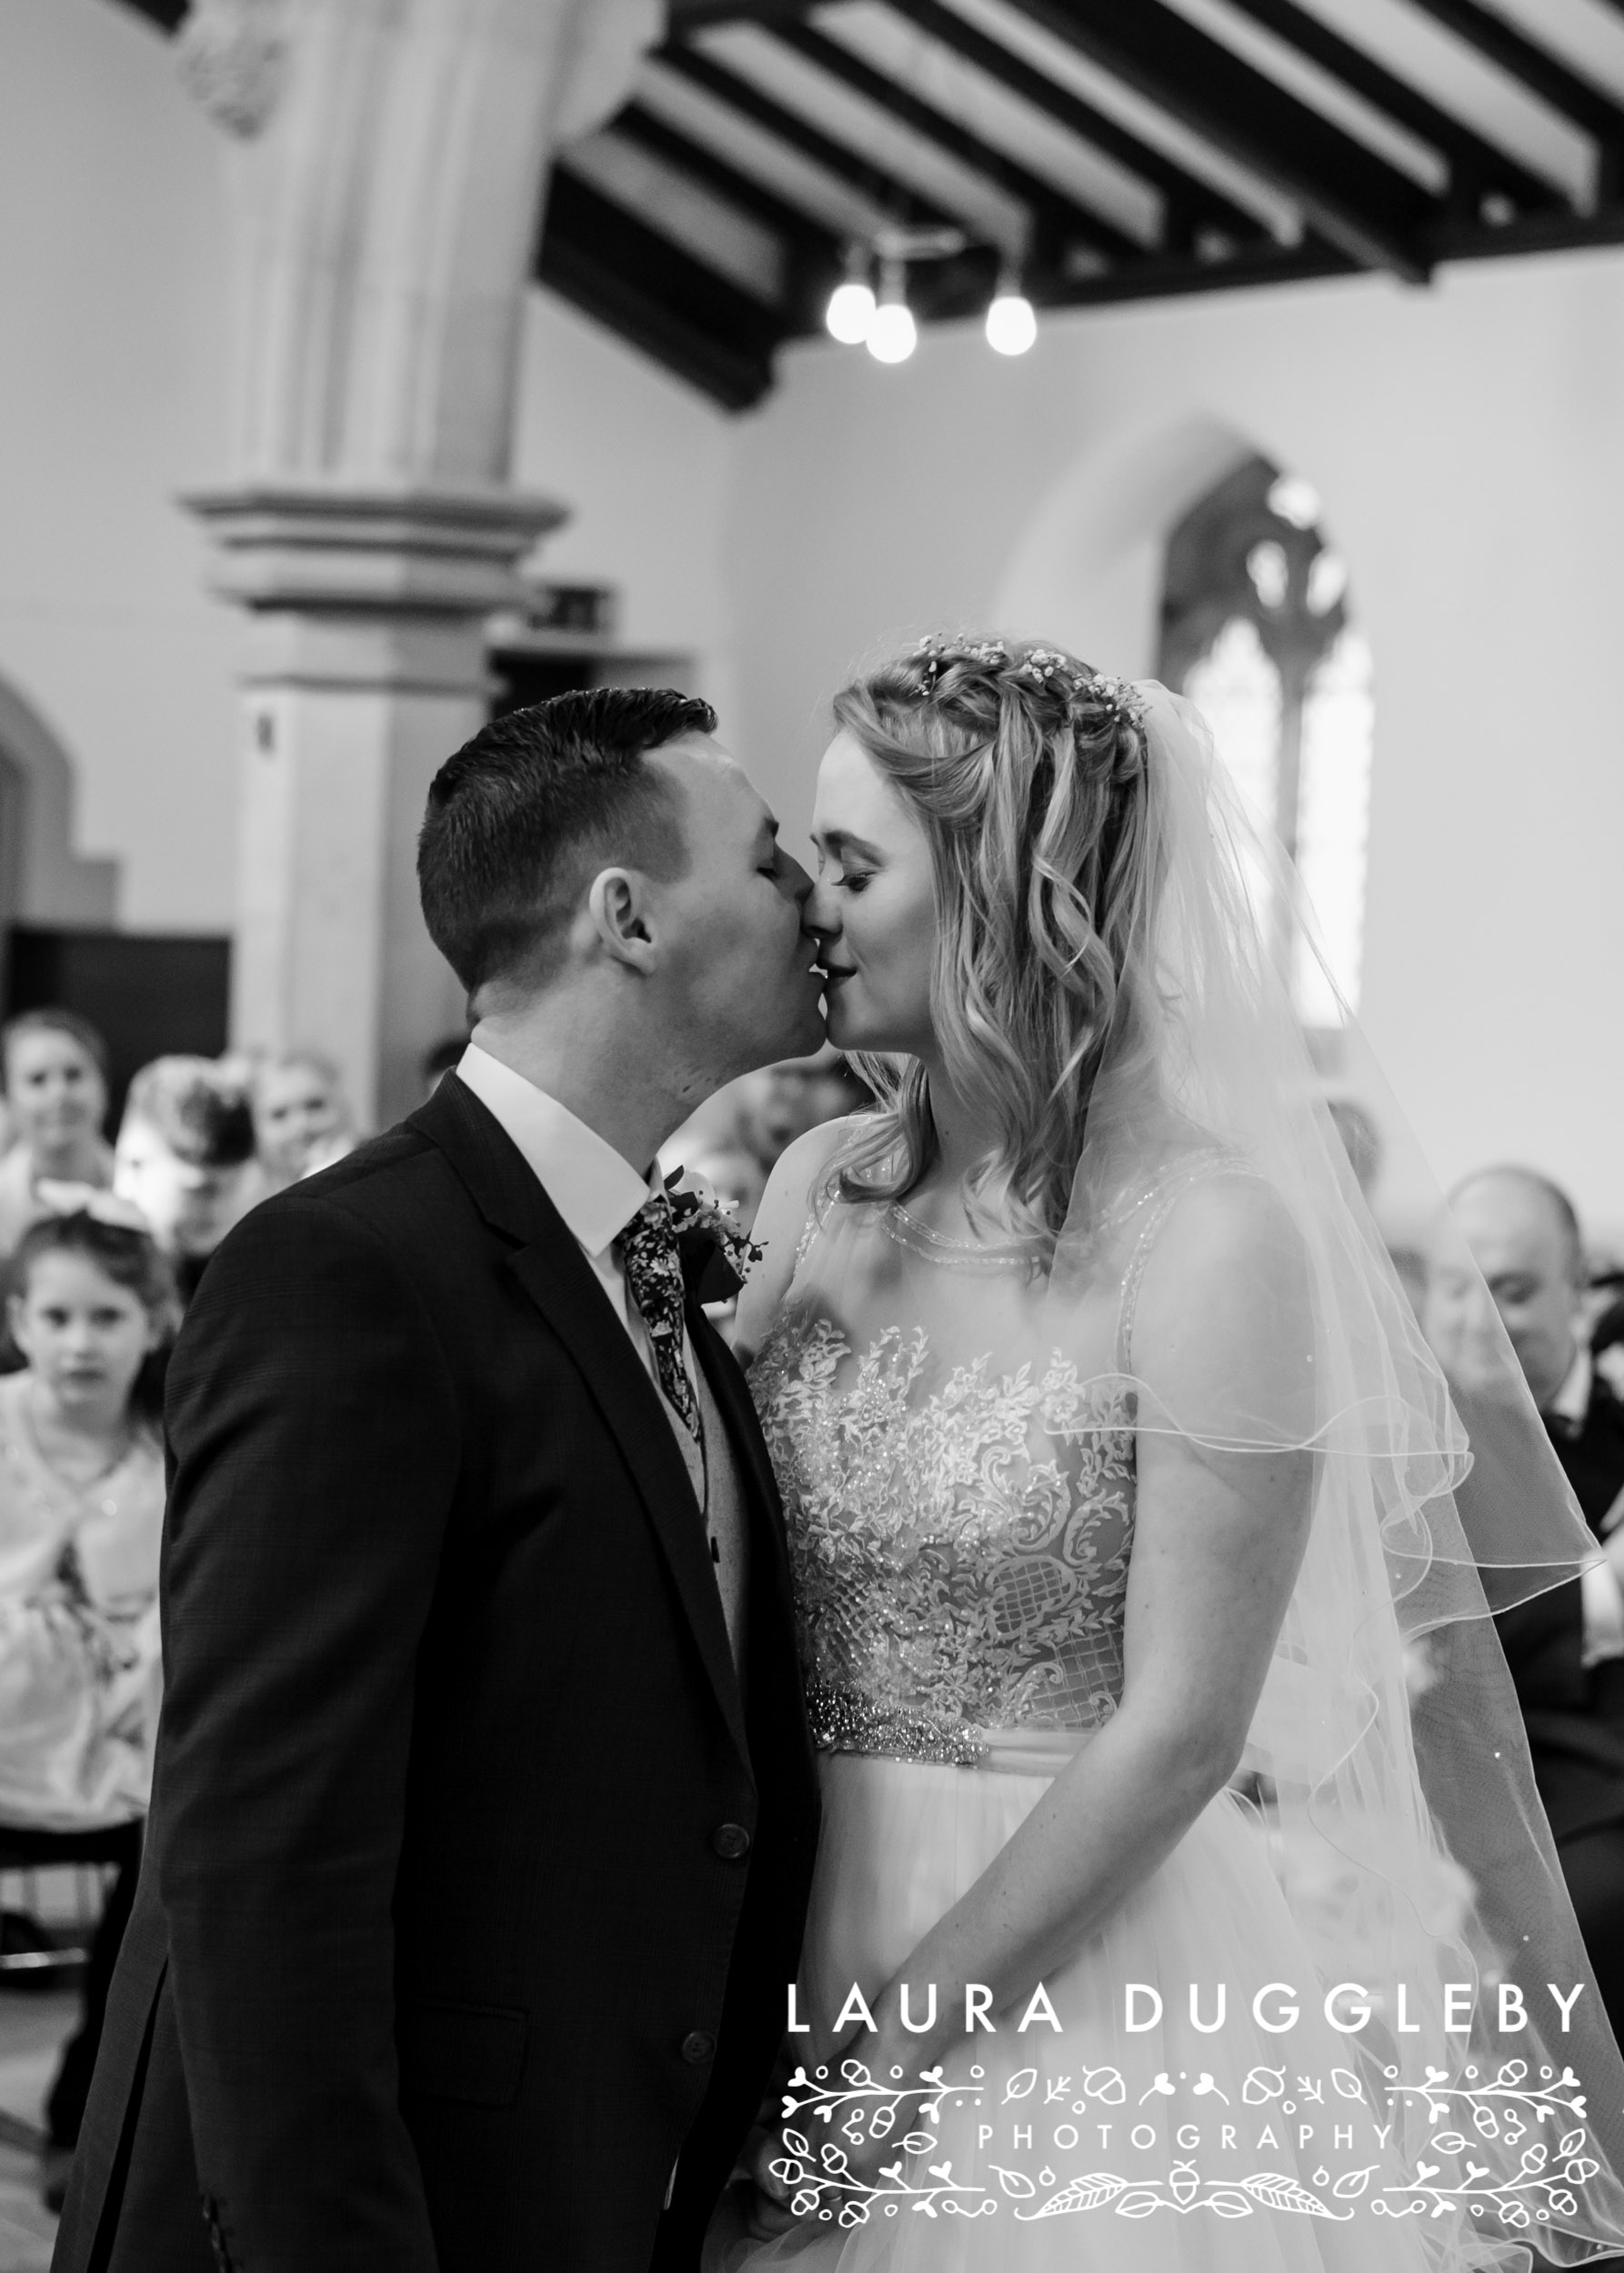 Mawdesley Village Hall - Lancashire Wedding Photographer - Laura Duggleby Photography4